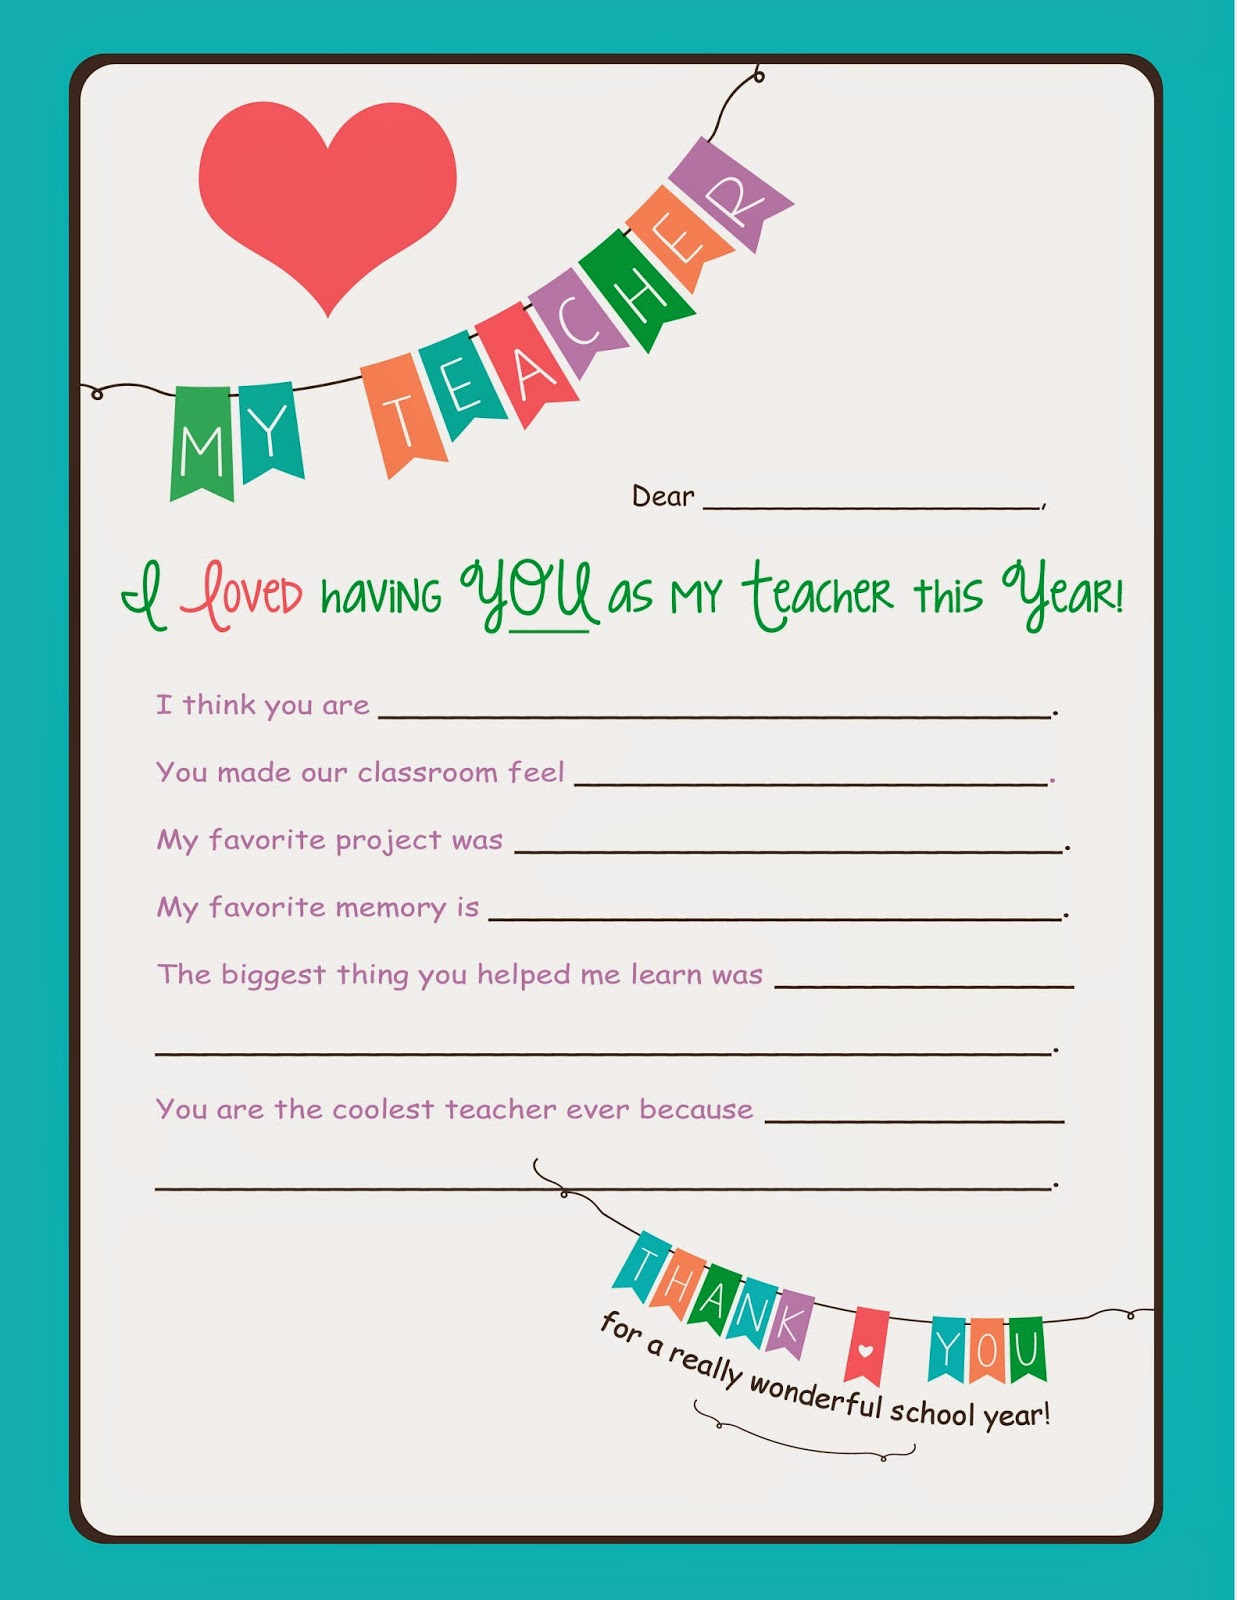 Trust image intended for thank you teacher free printable